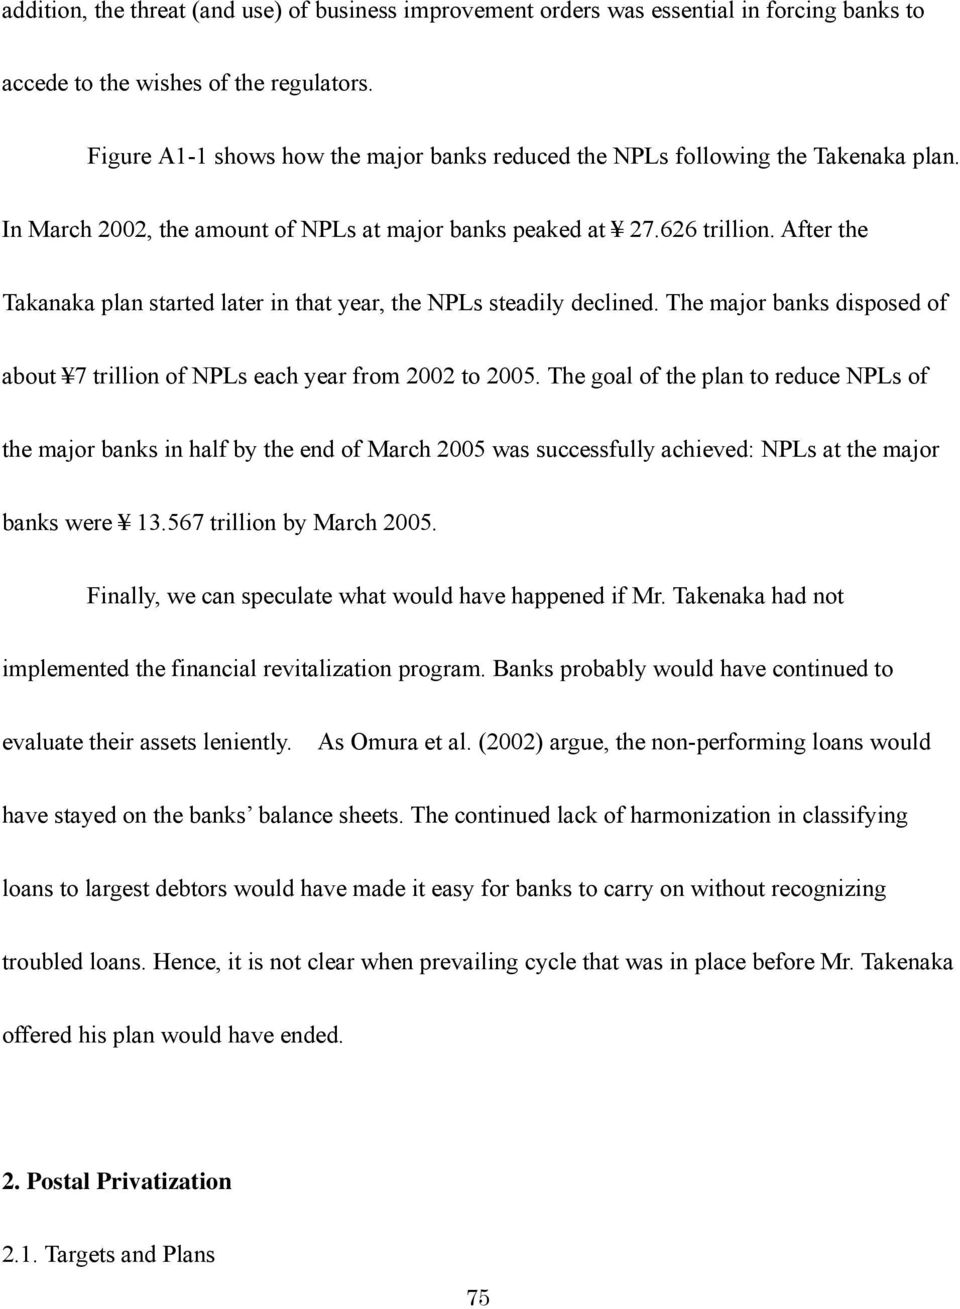 After the Takanaka plan started later in that year, the NPLs steadily declined. The major banks disposed of about 7 trillion of NPLs each year from 2002 to 2005.